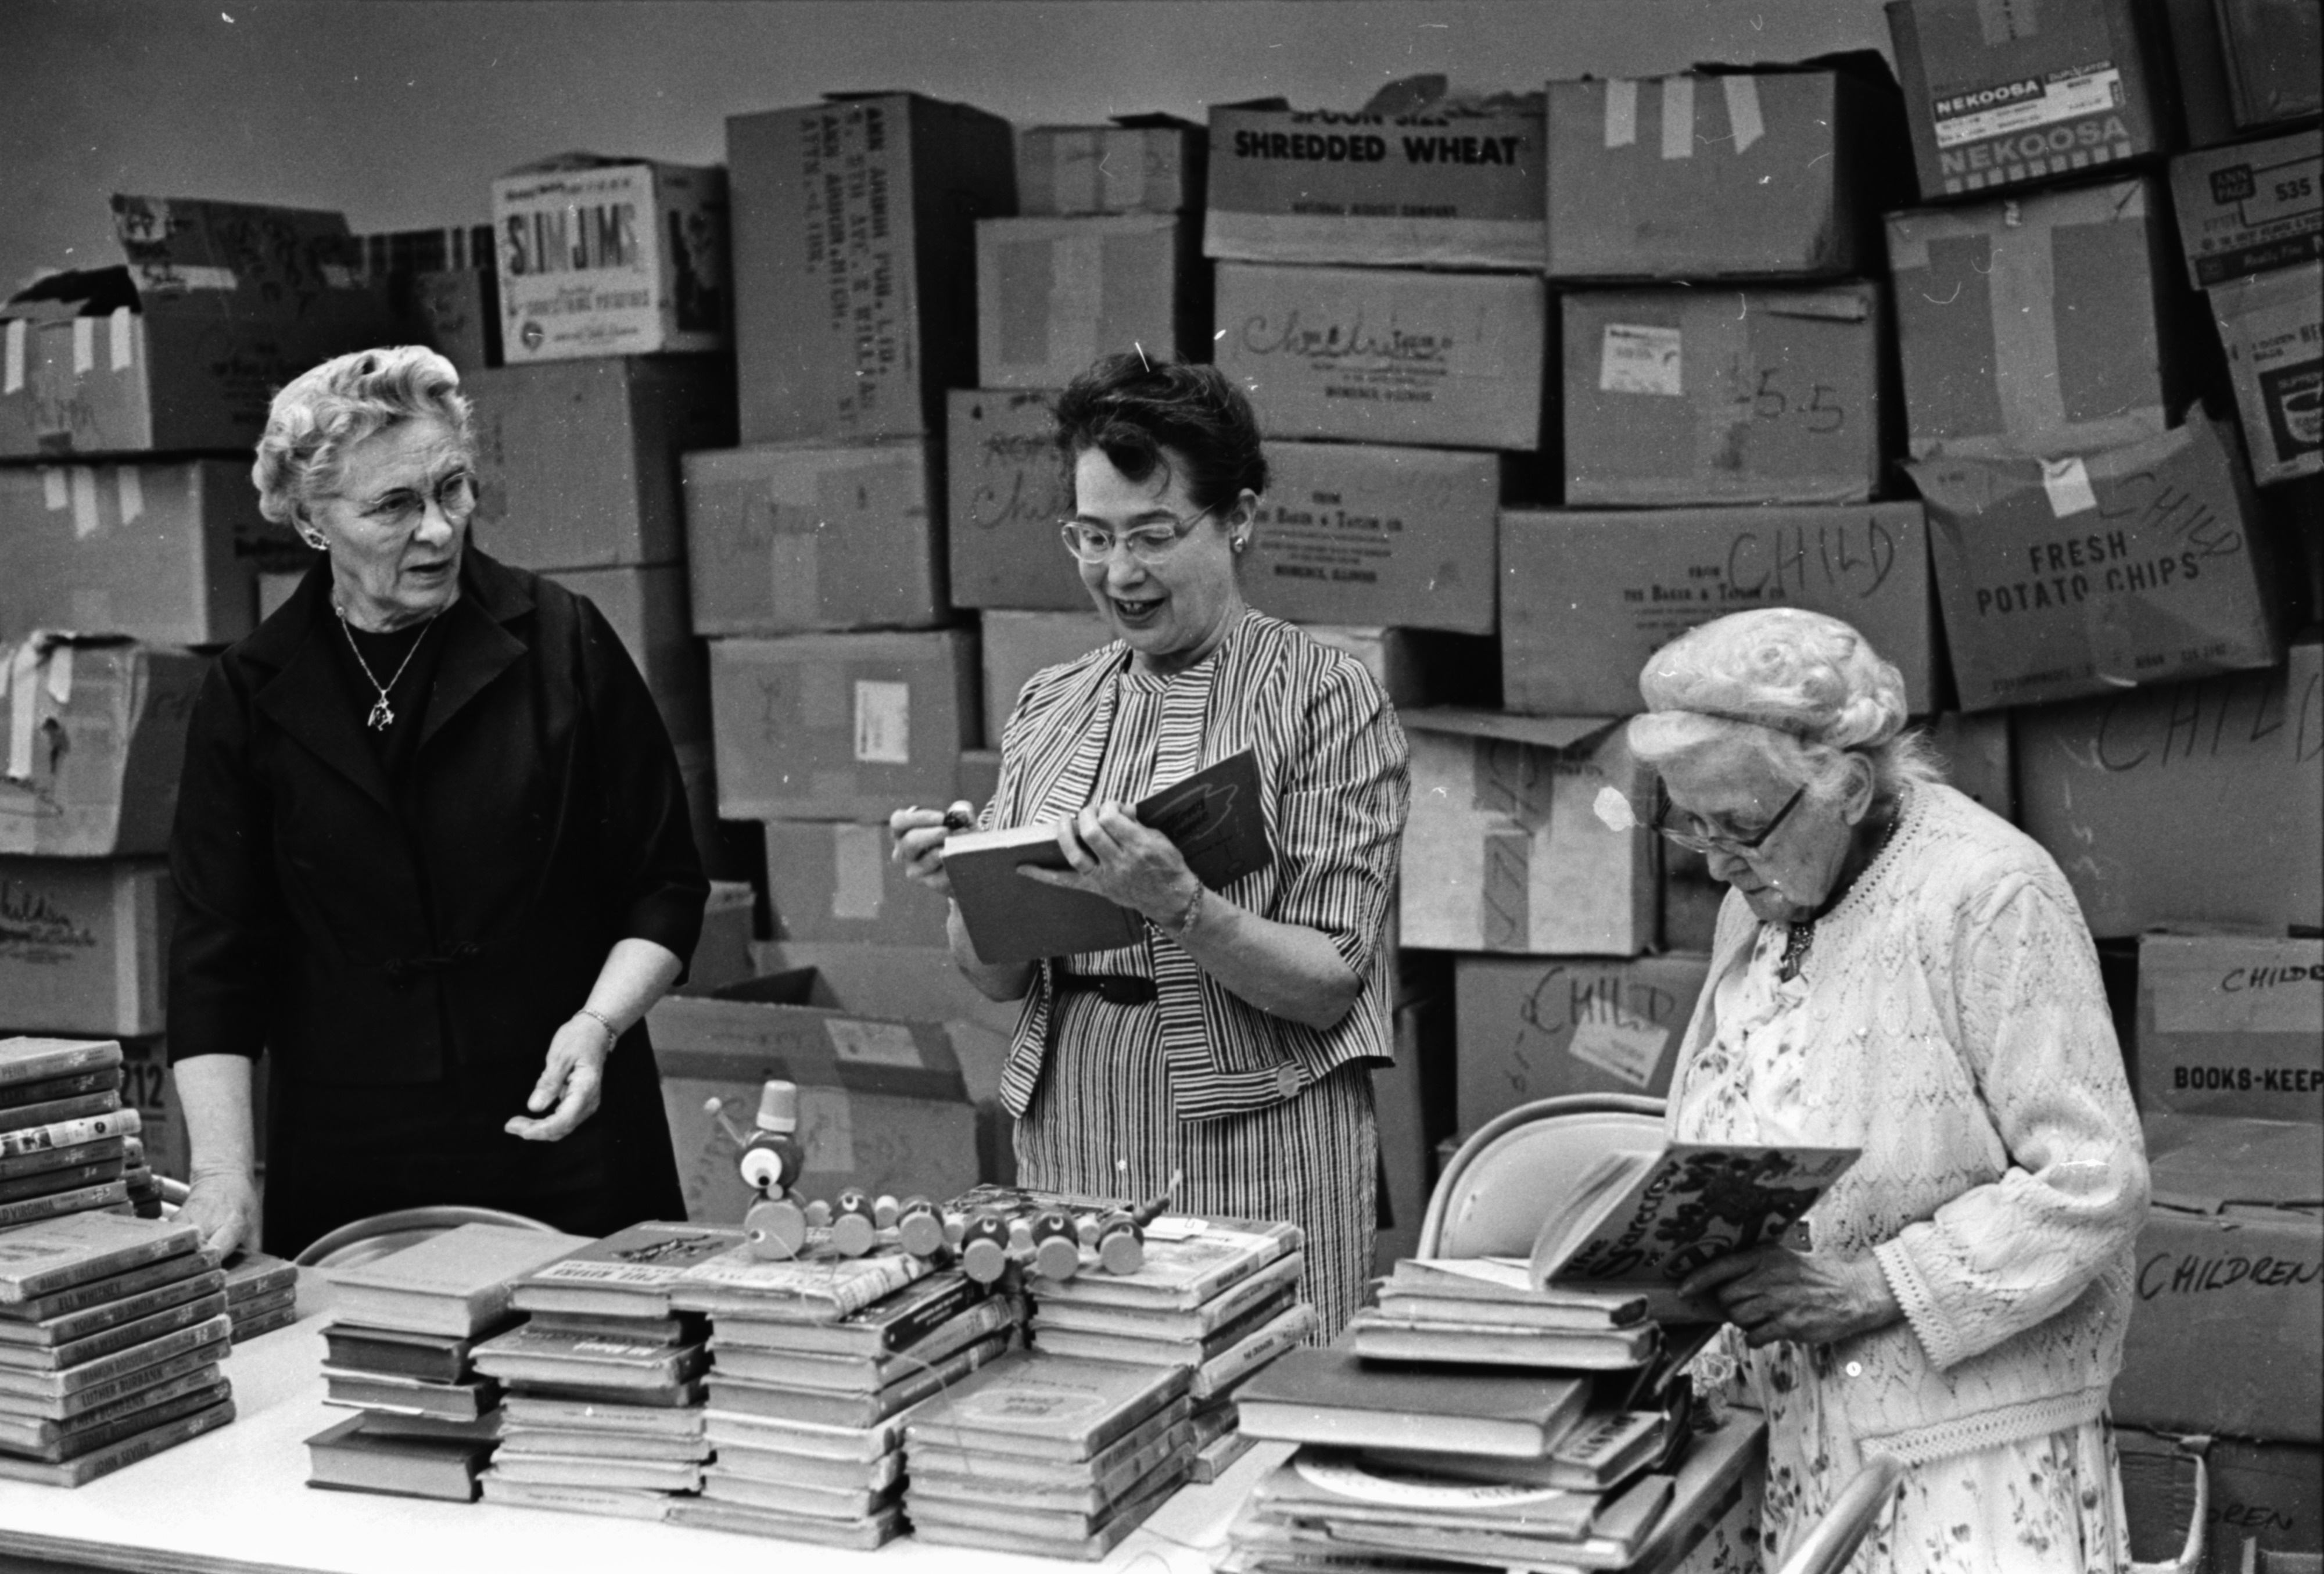 Working On May Book Fair, May 1968 image